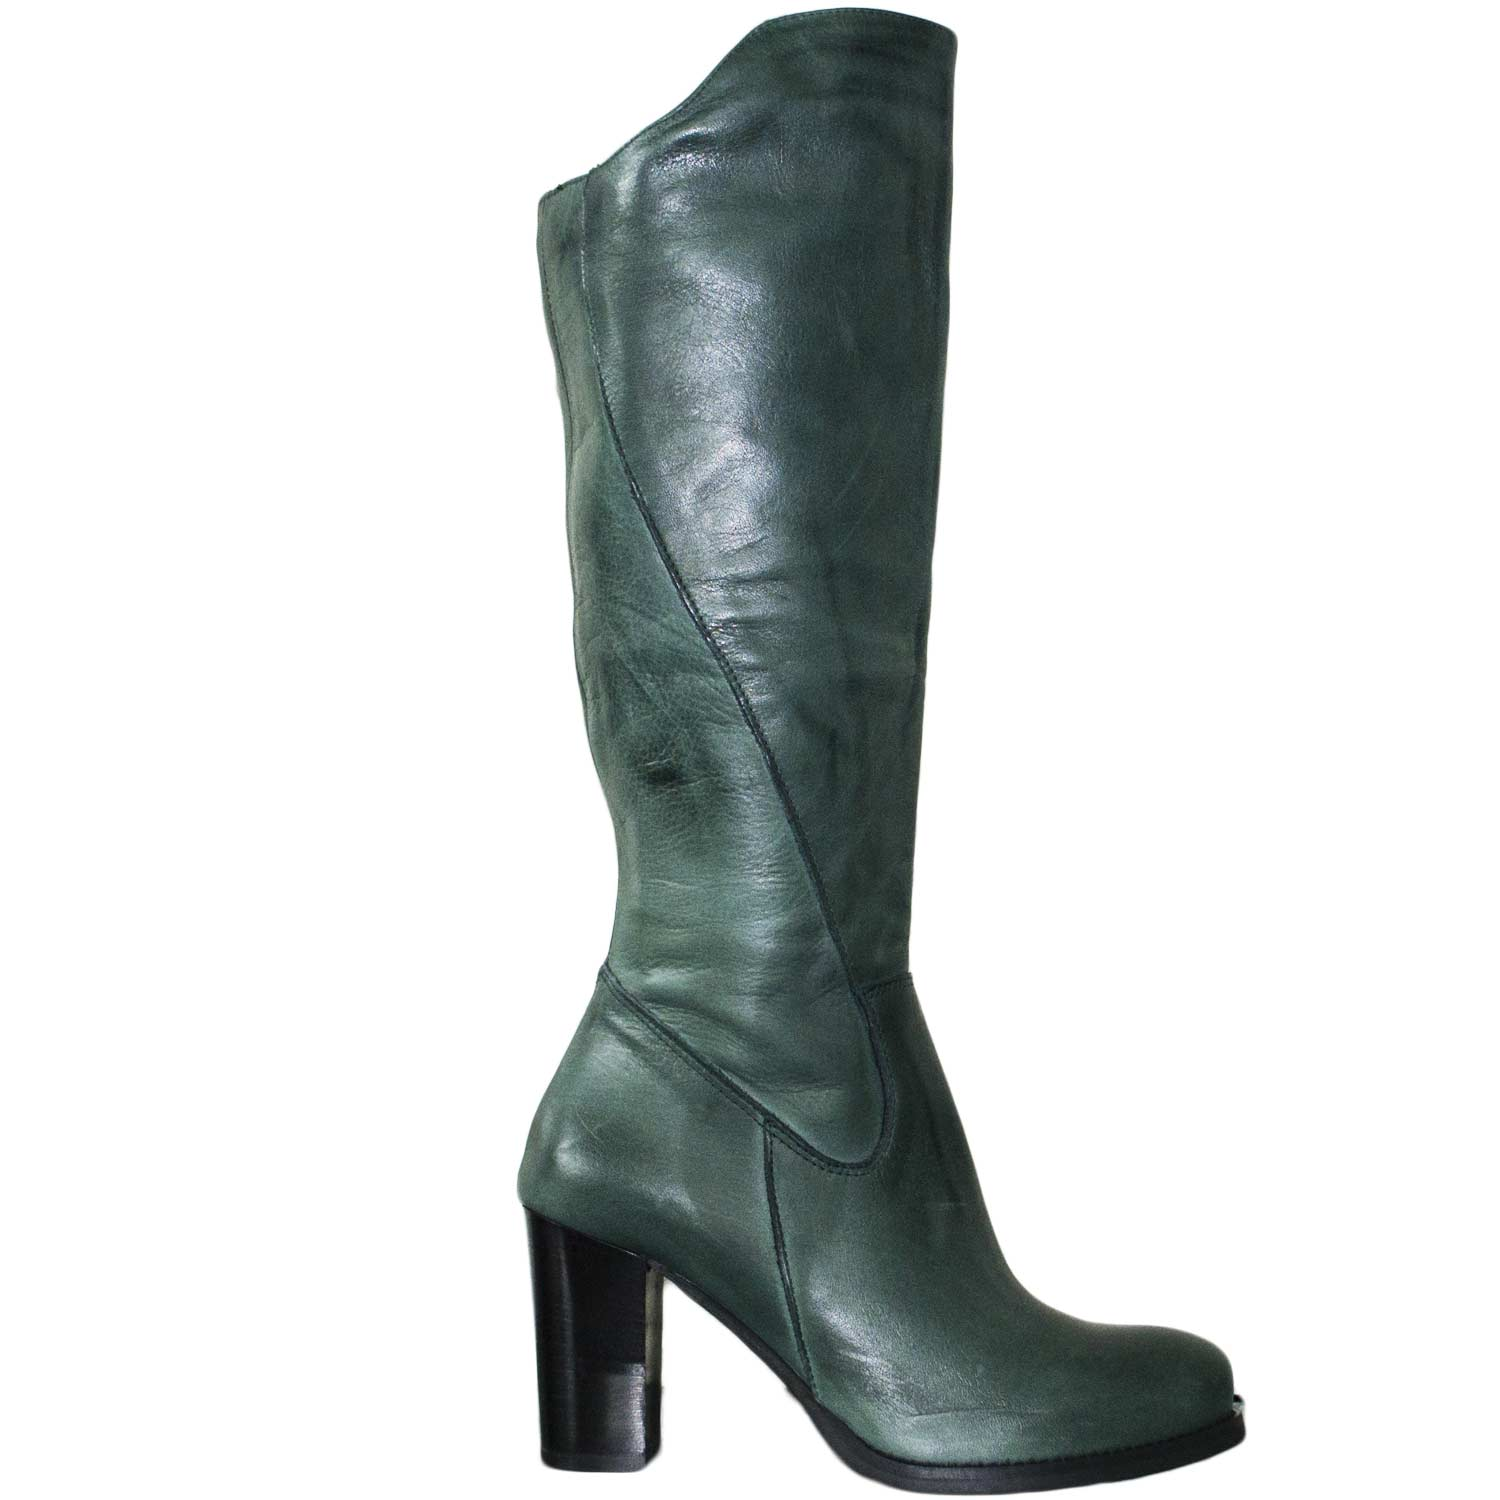 Stivale donna vera pelle verde tacco largo comfort made in italy art 10230 .